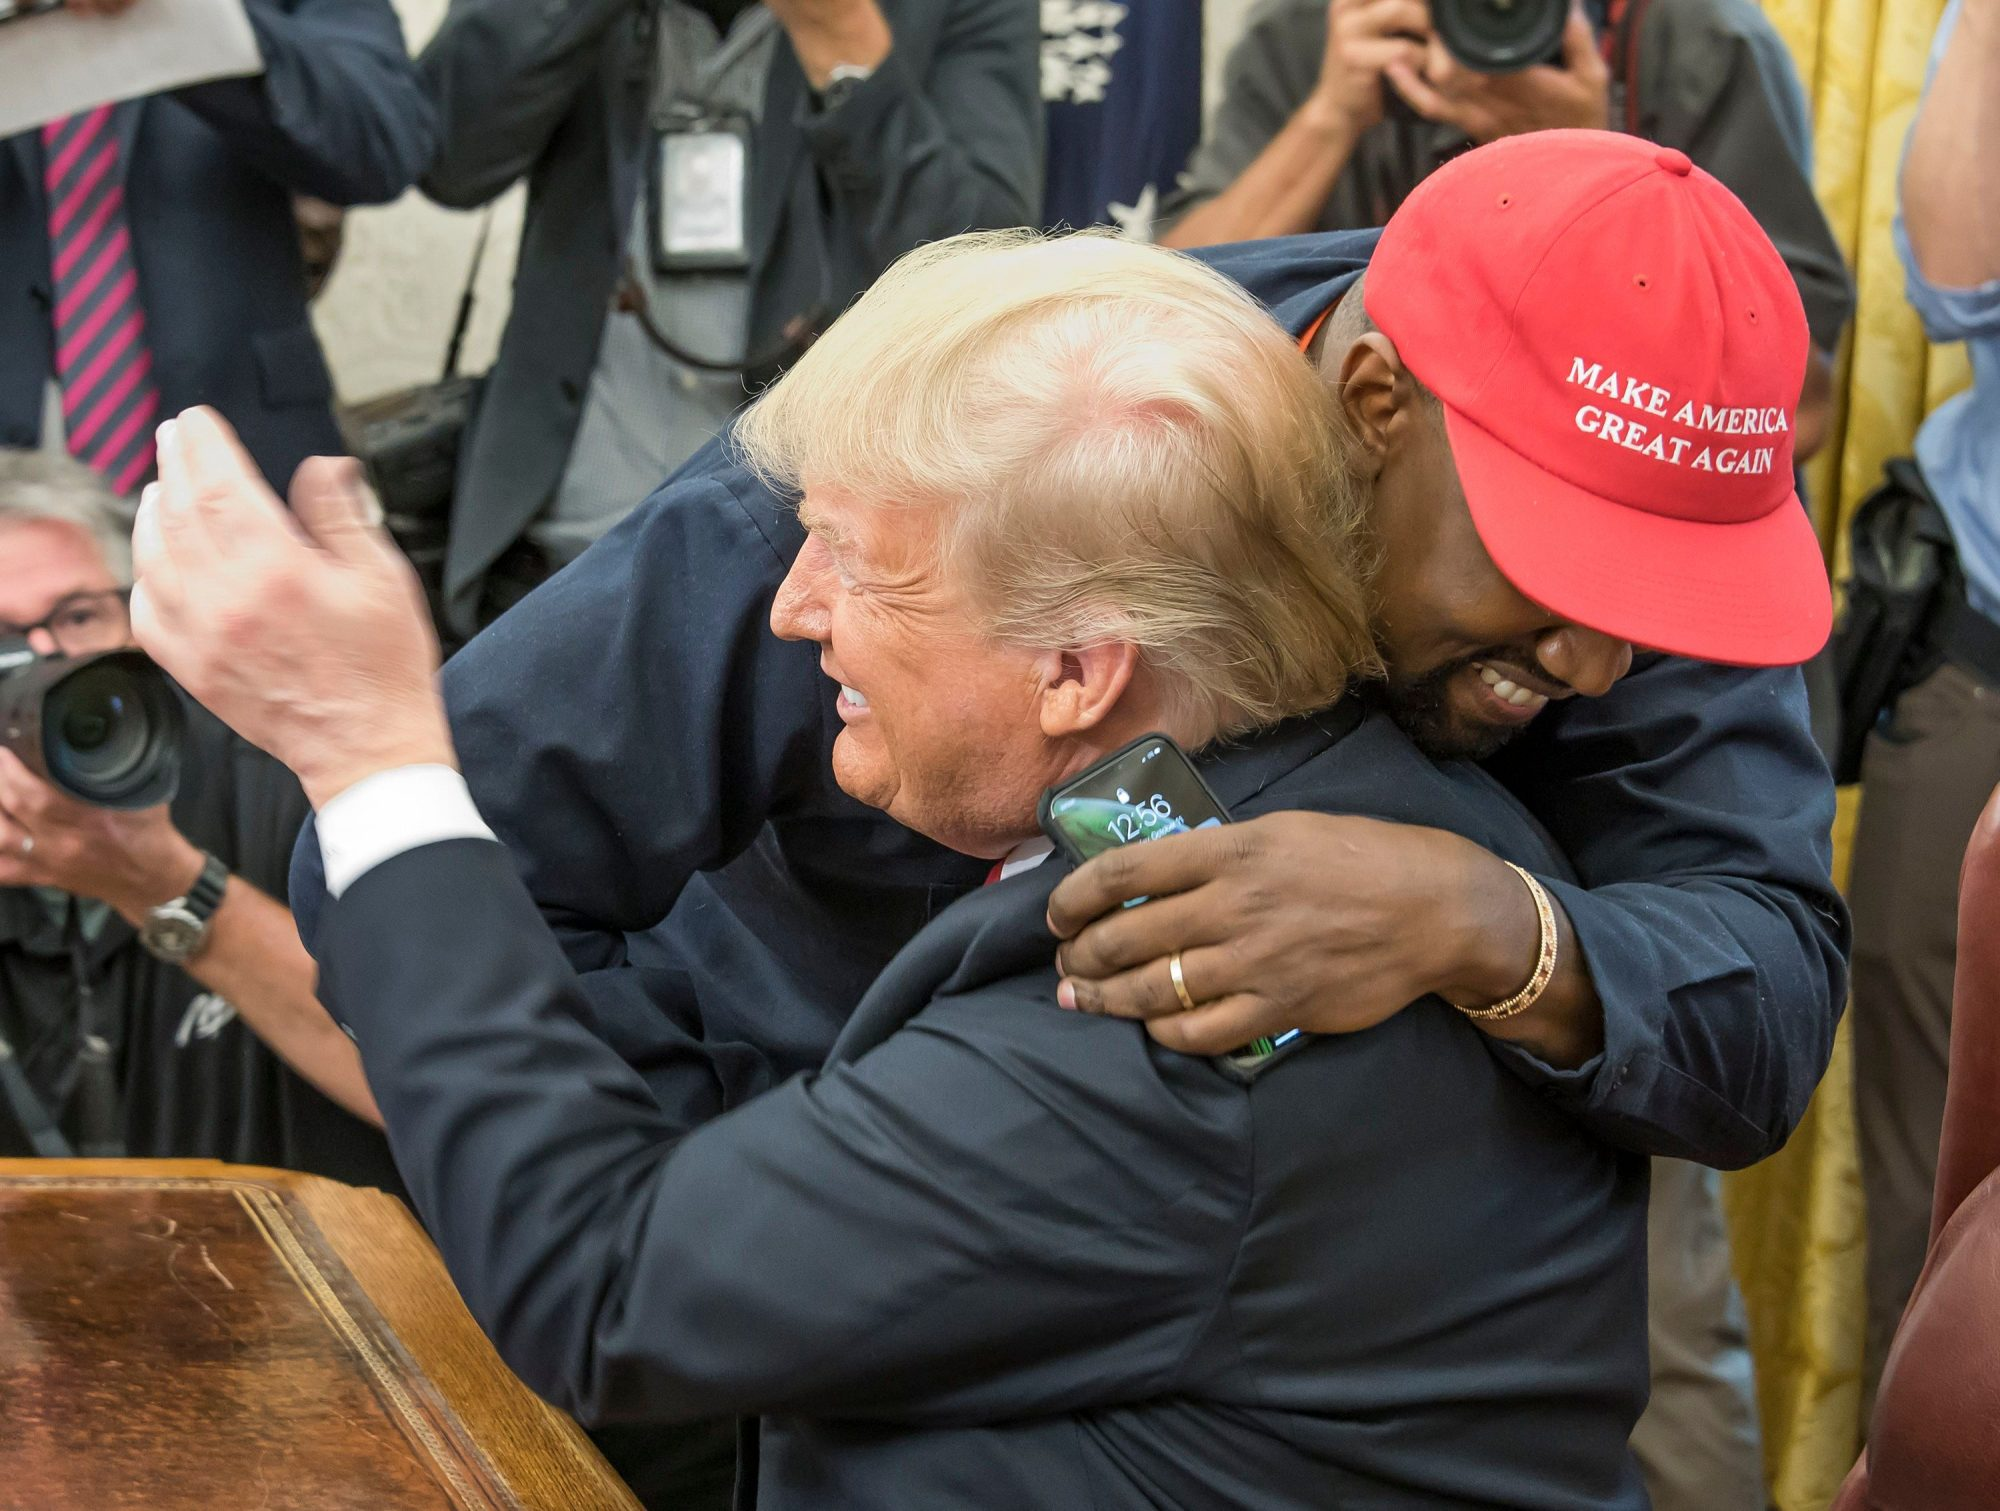 Kanye announces 2020 presidential bid - channel 4